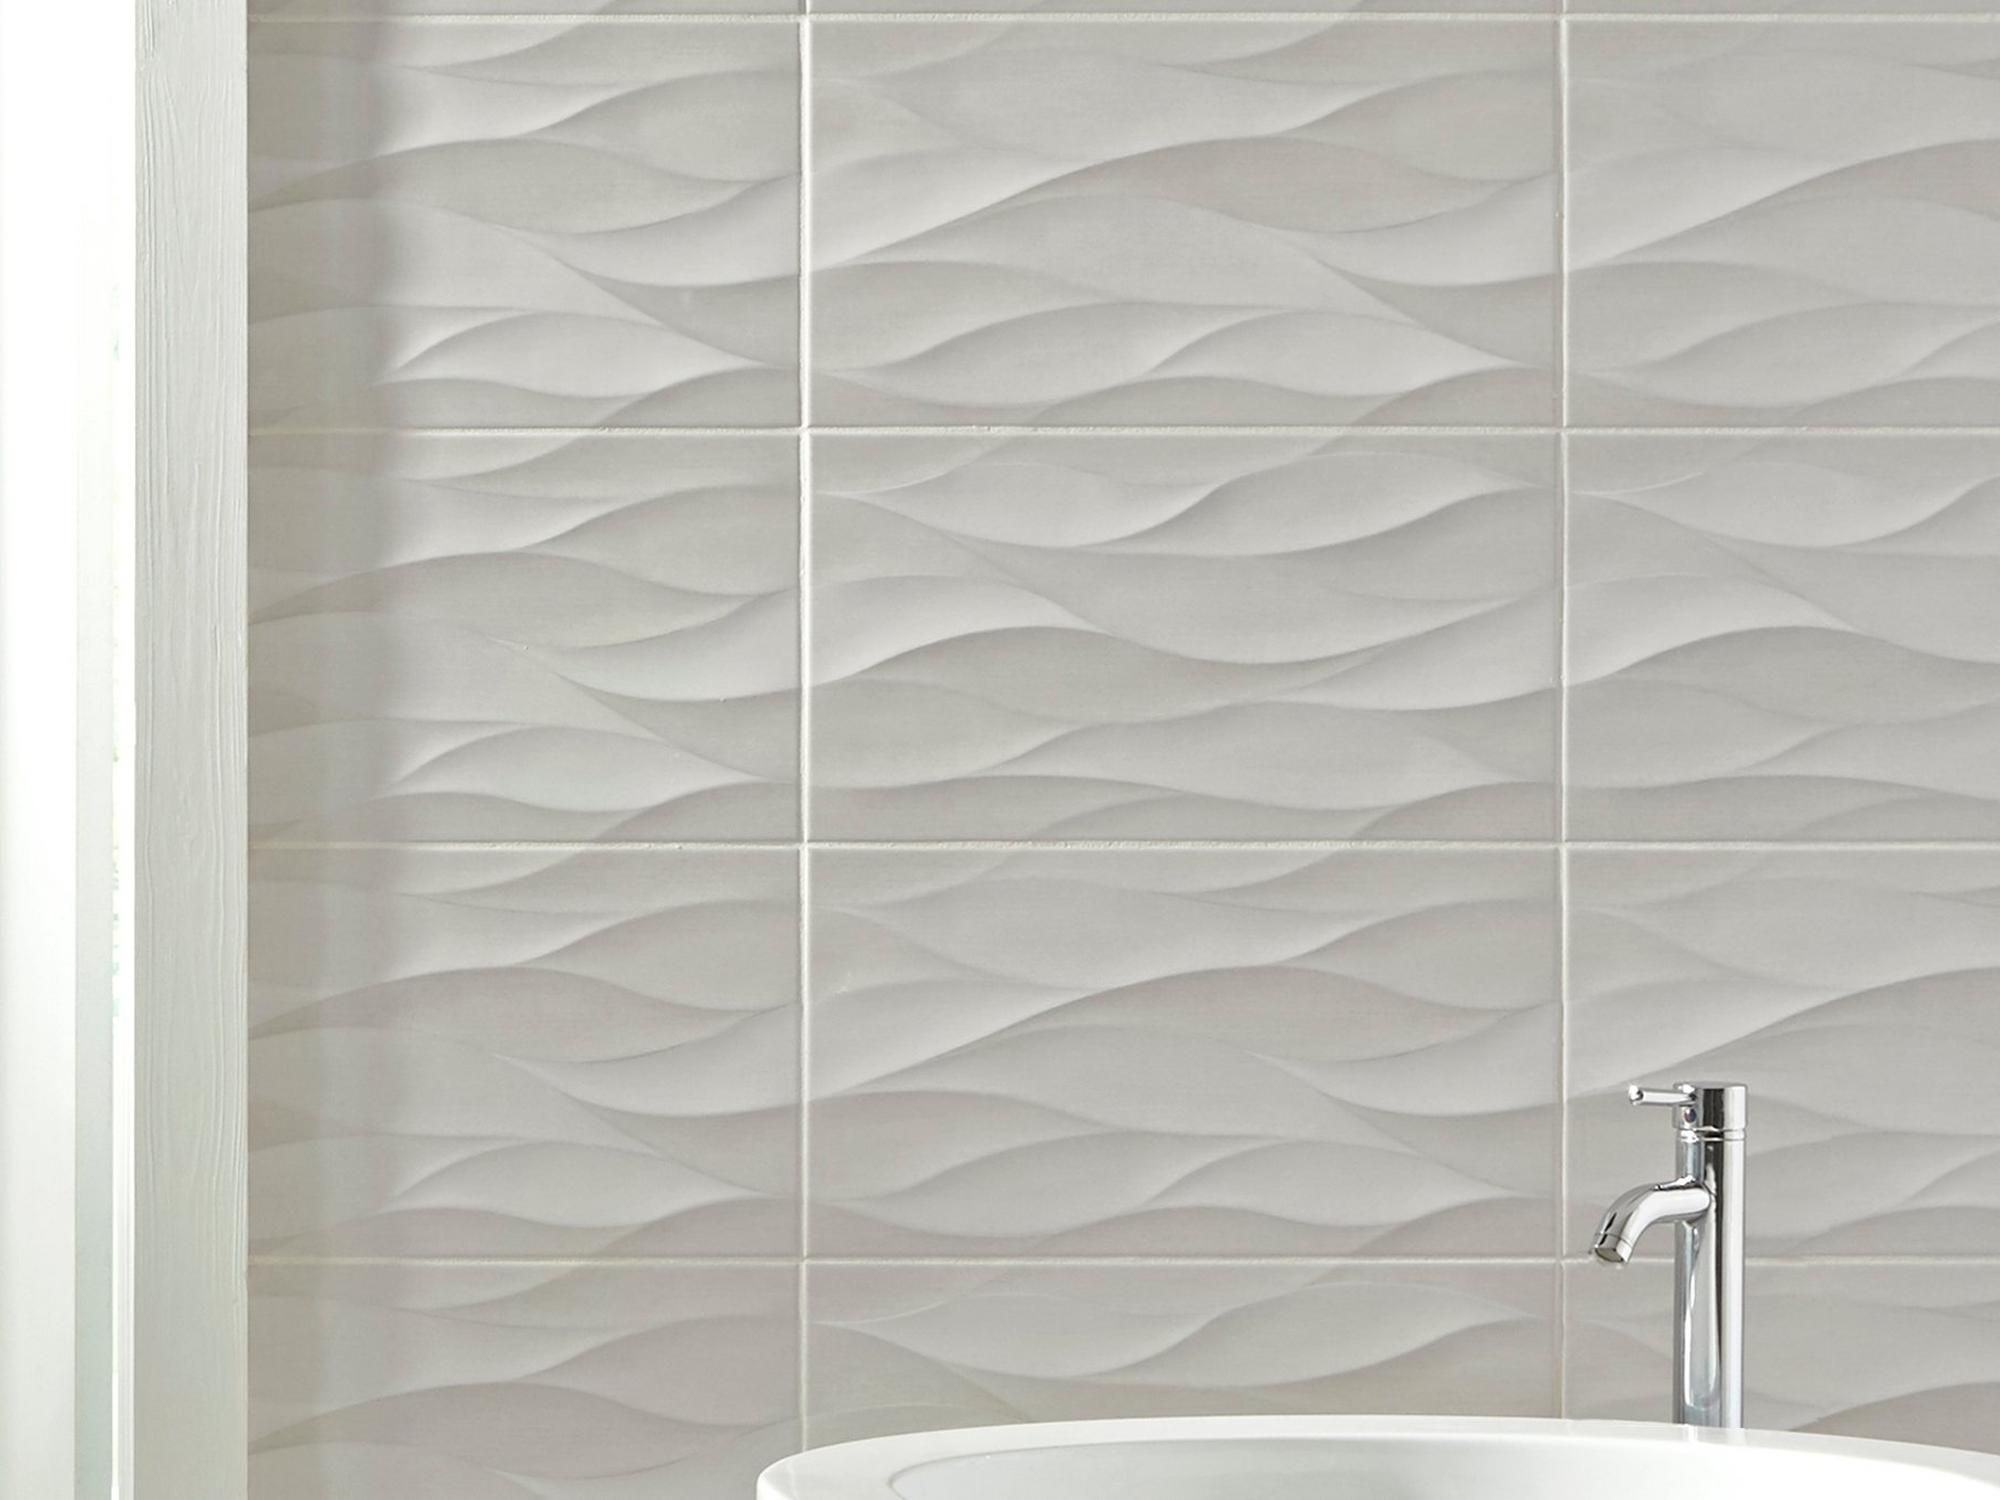 Idol tear gray ceramic tile wall tiles ceramic wall tiles and idol tear gray ceramic tile dailygadgetfo Image collections